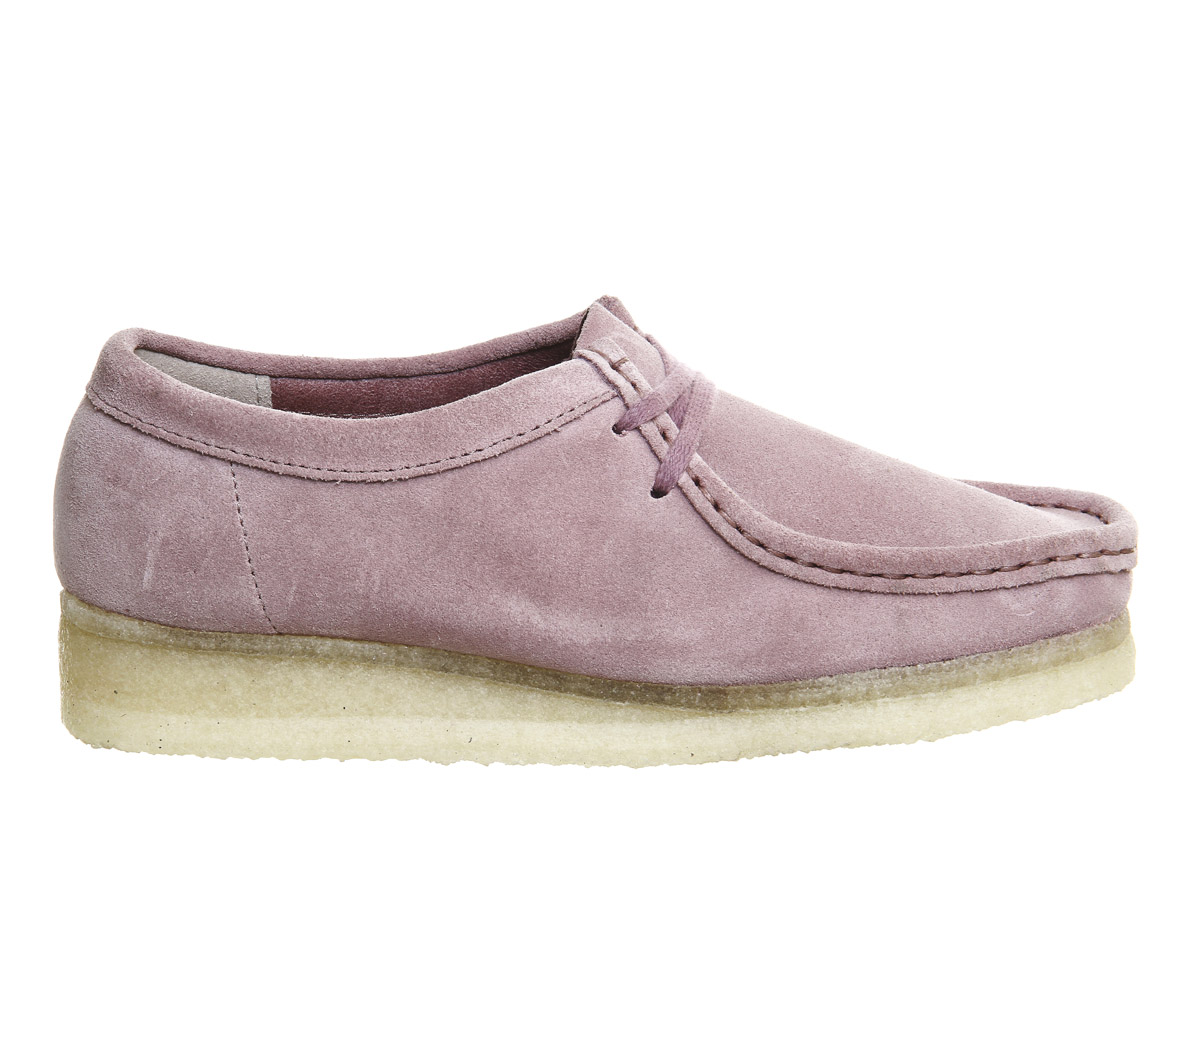 87a8e894 Clarks Originals Wallabee Shoes Vintage Pink Suede - Ankle Boots